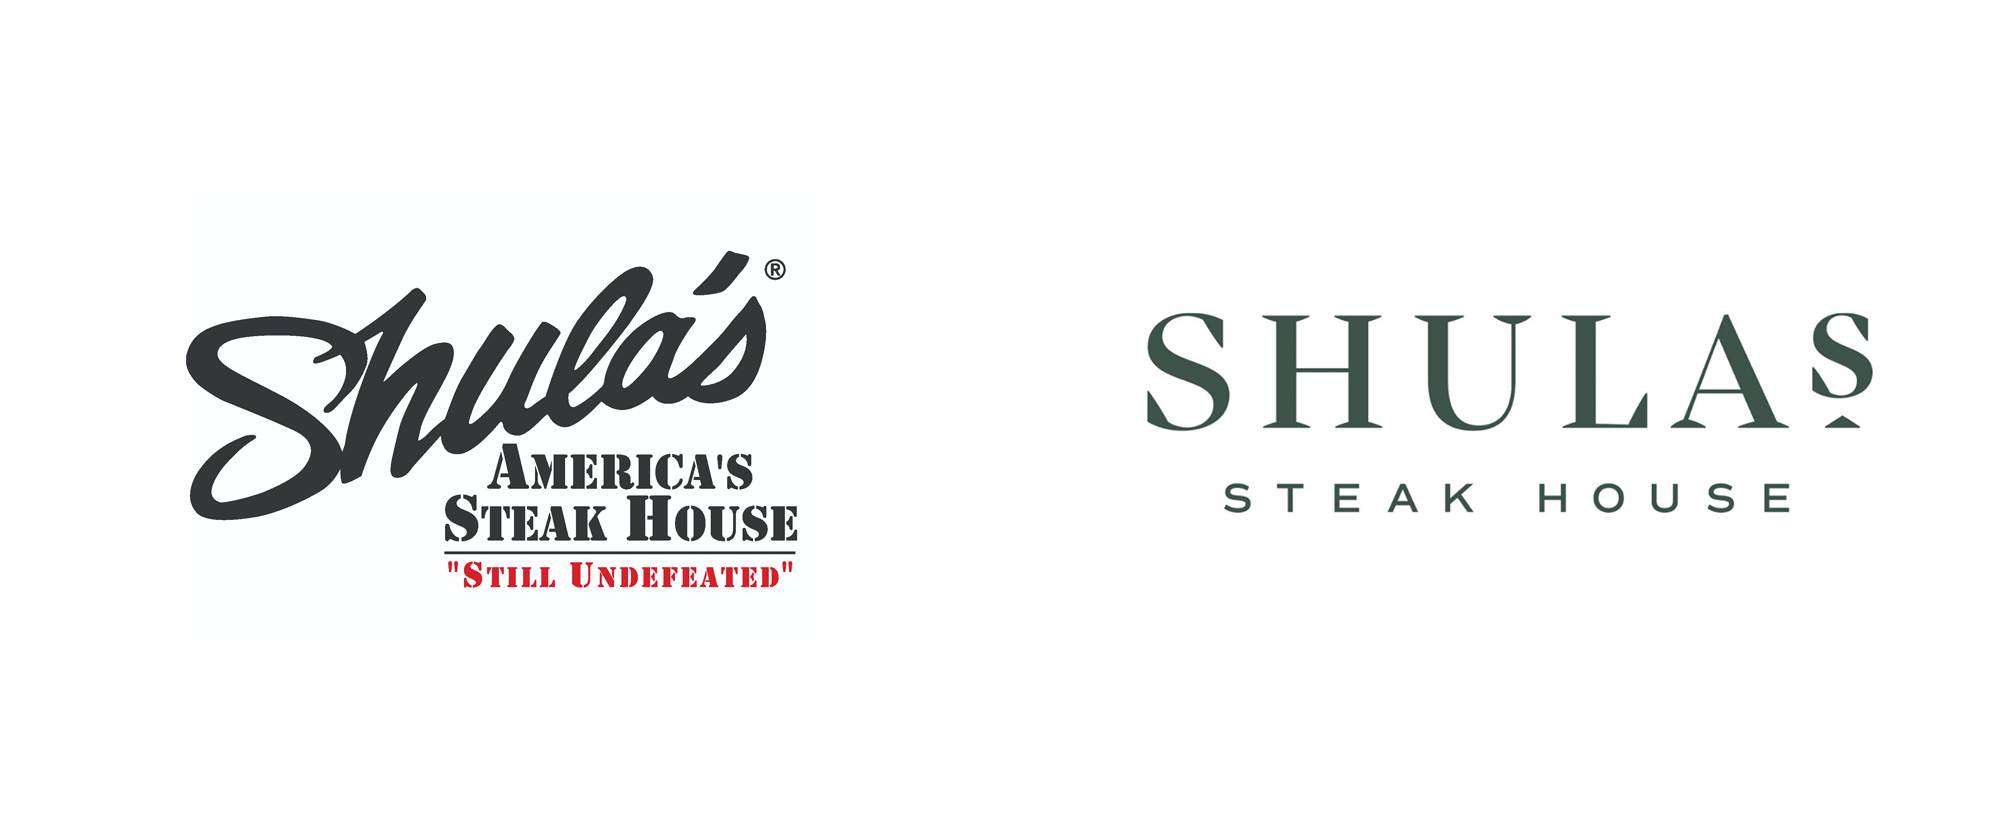 New Logo and Identity for Shula's Steakhouse by Temper